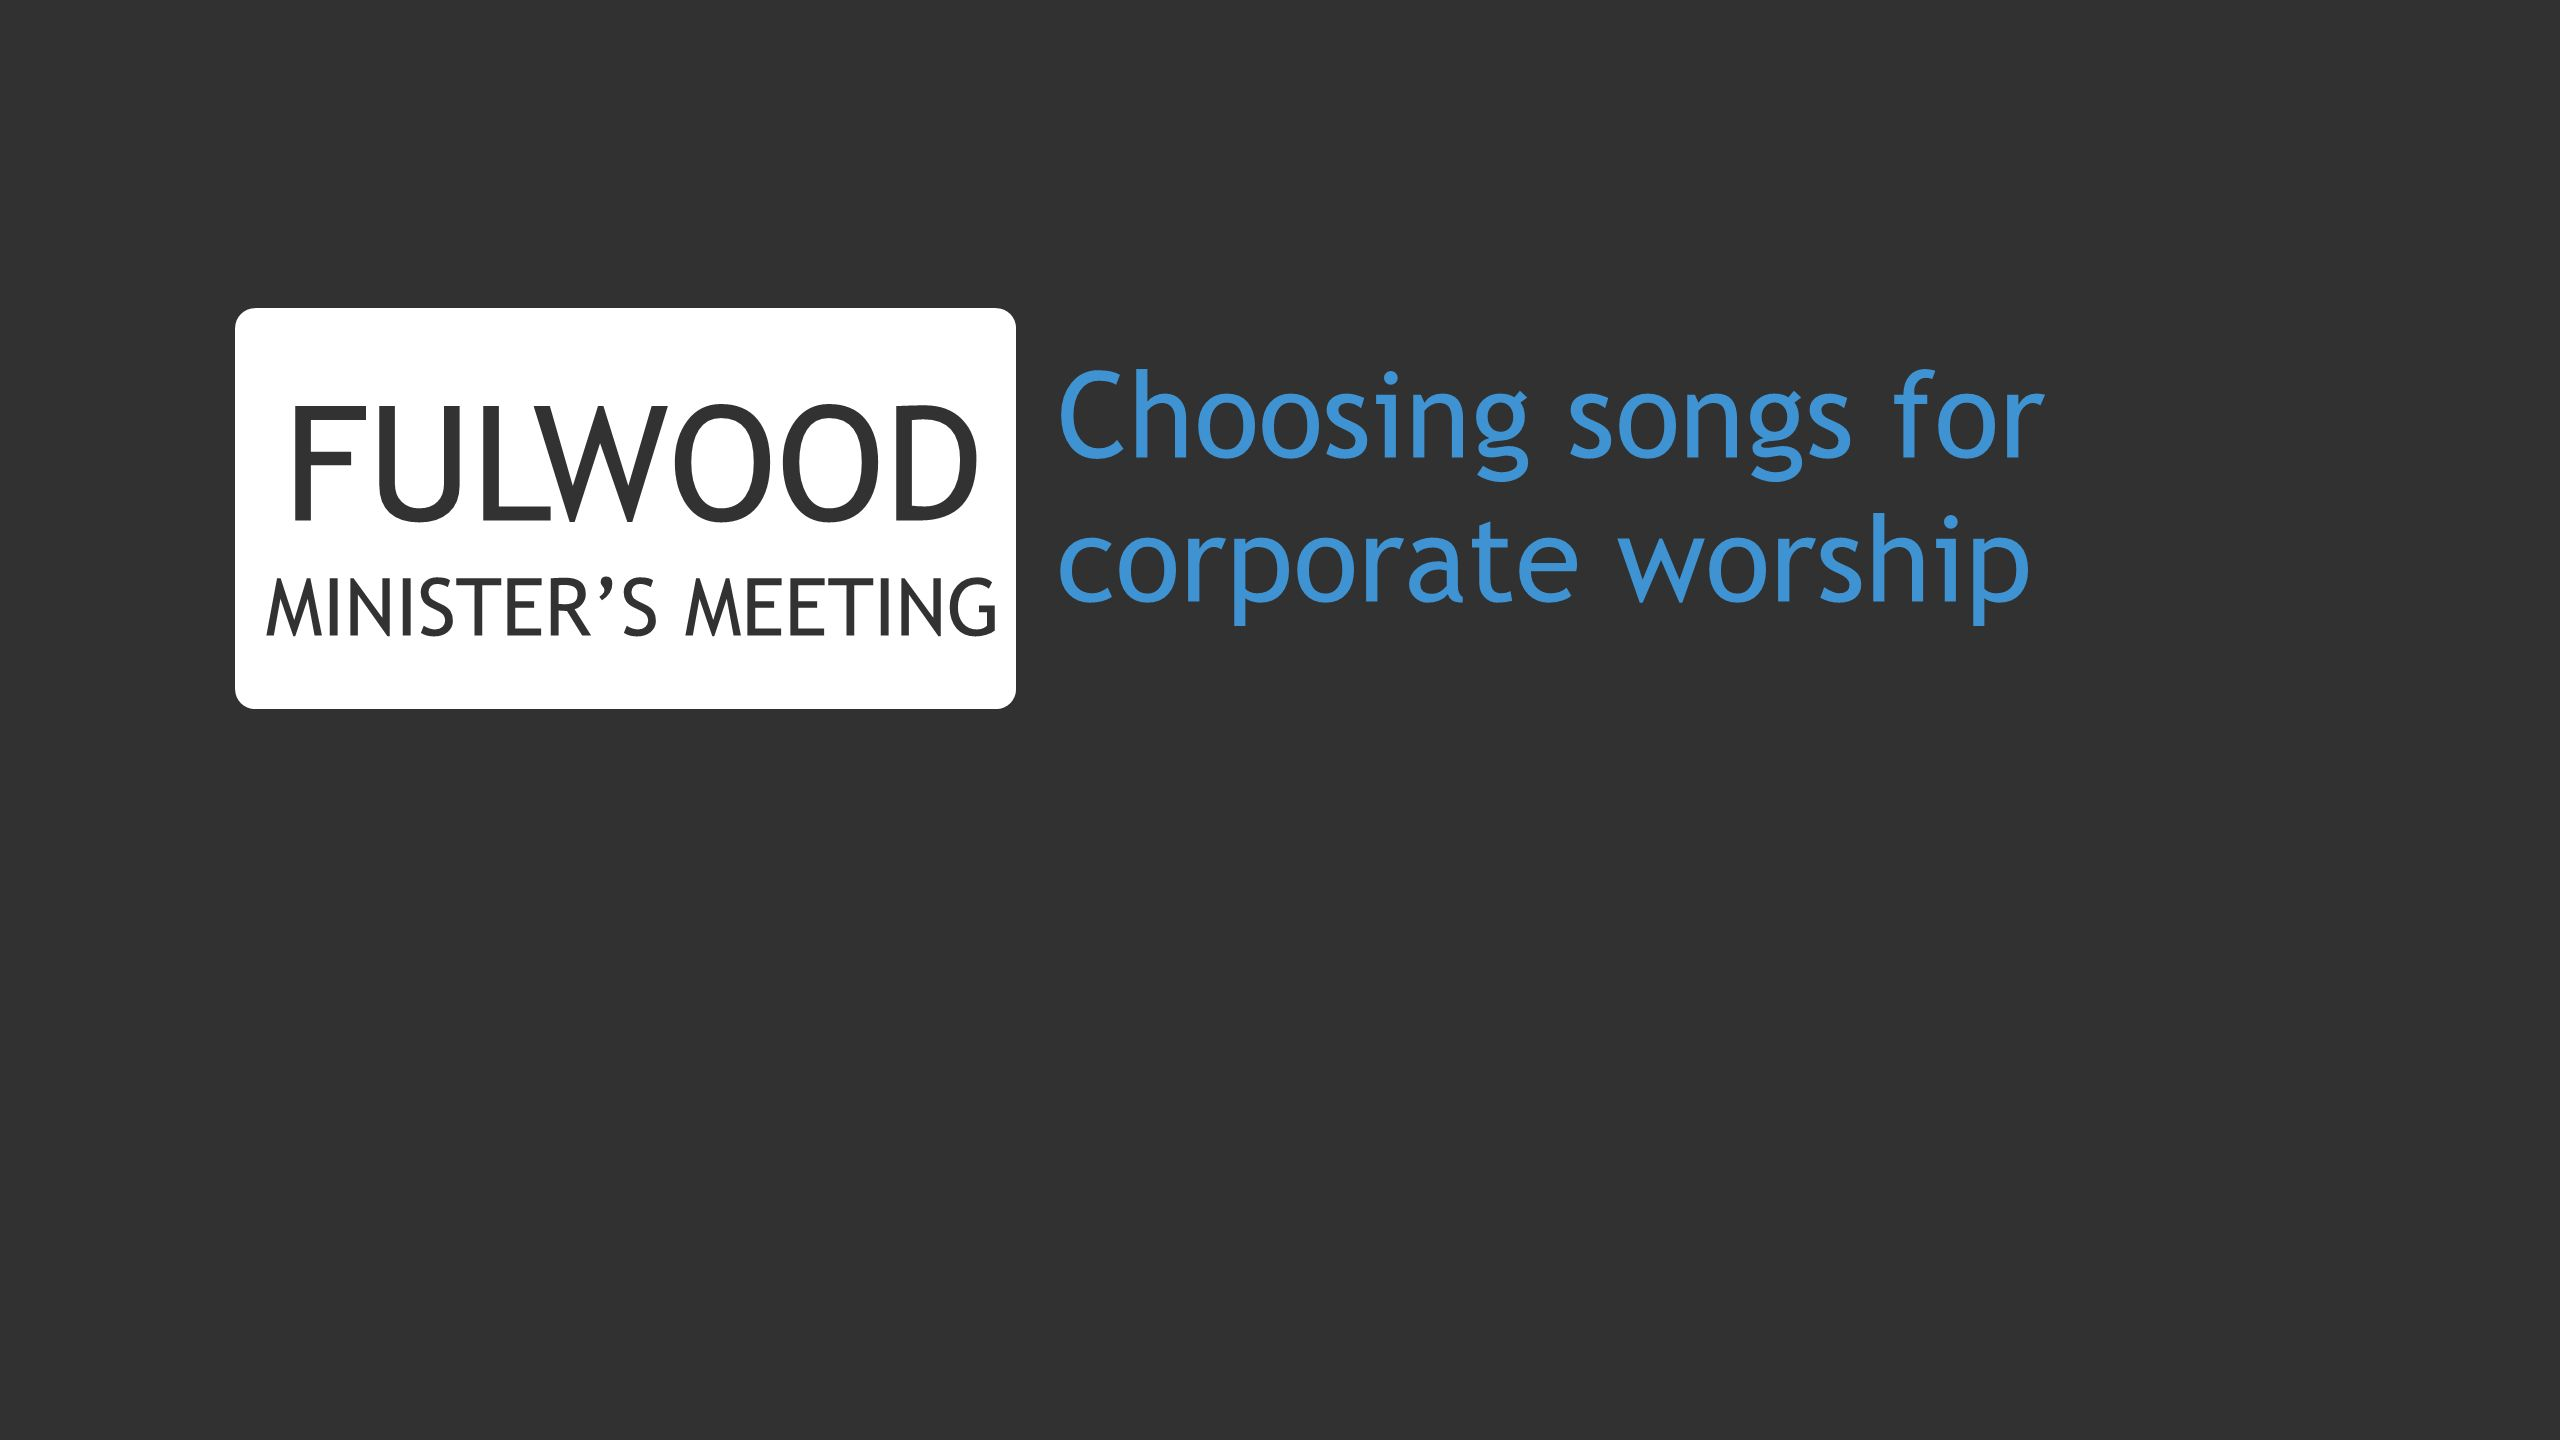 Choosing songs for corporate worship FULWOOD MINISTERS MEETING